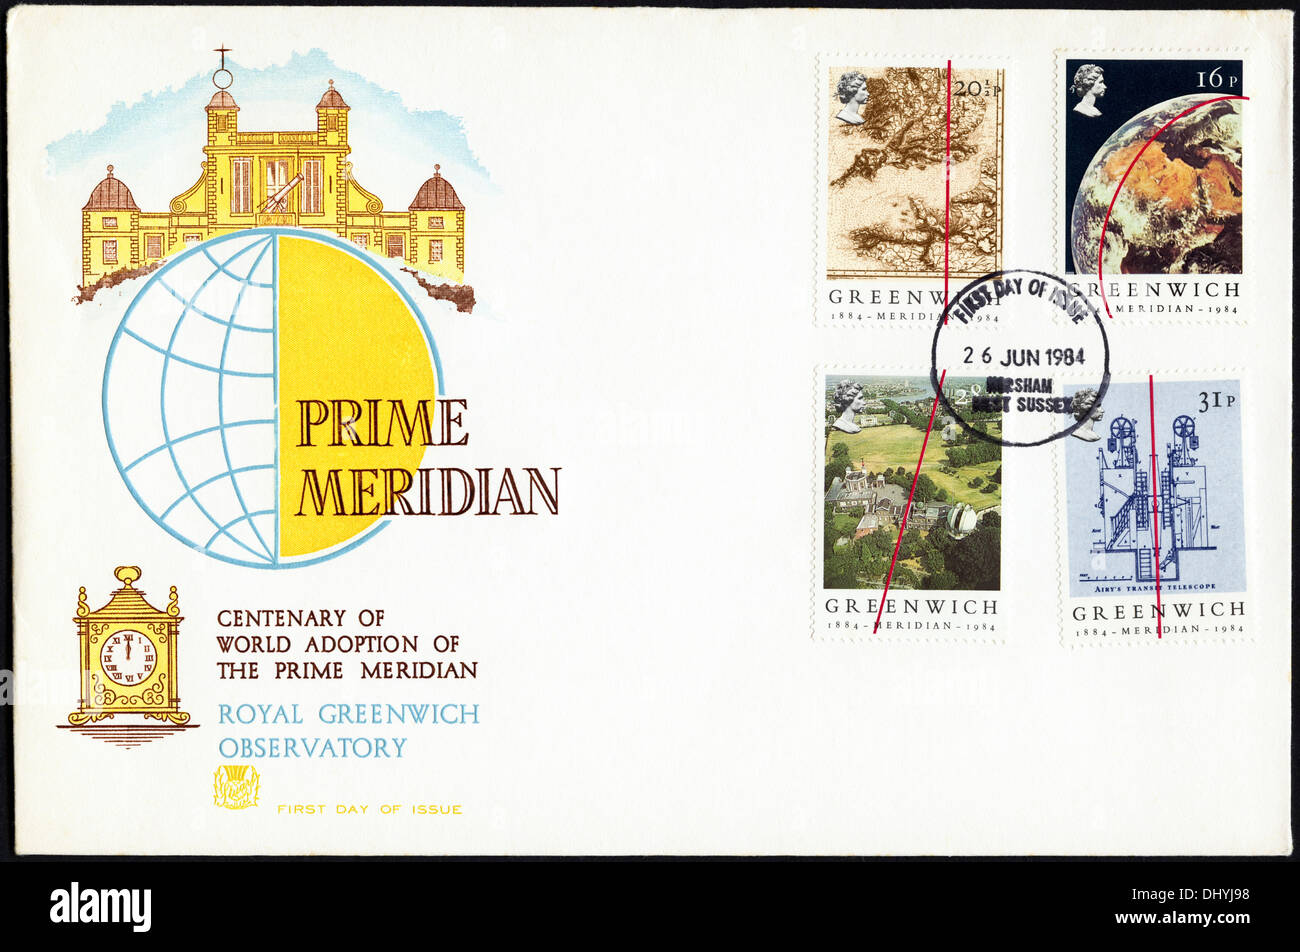 Commemorative 16p 20½p 28p & 31p postage stamp first day cover for Greenwich Meridian issue postmark Horsham - Stock Image